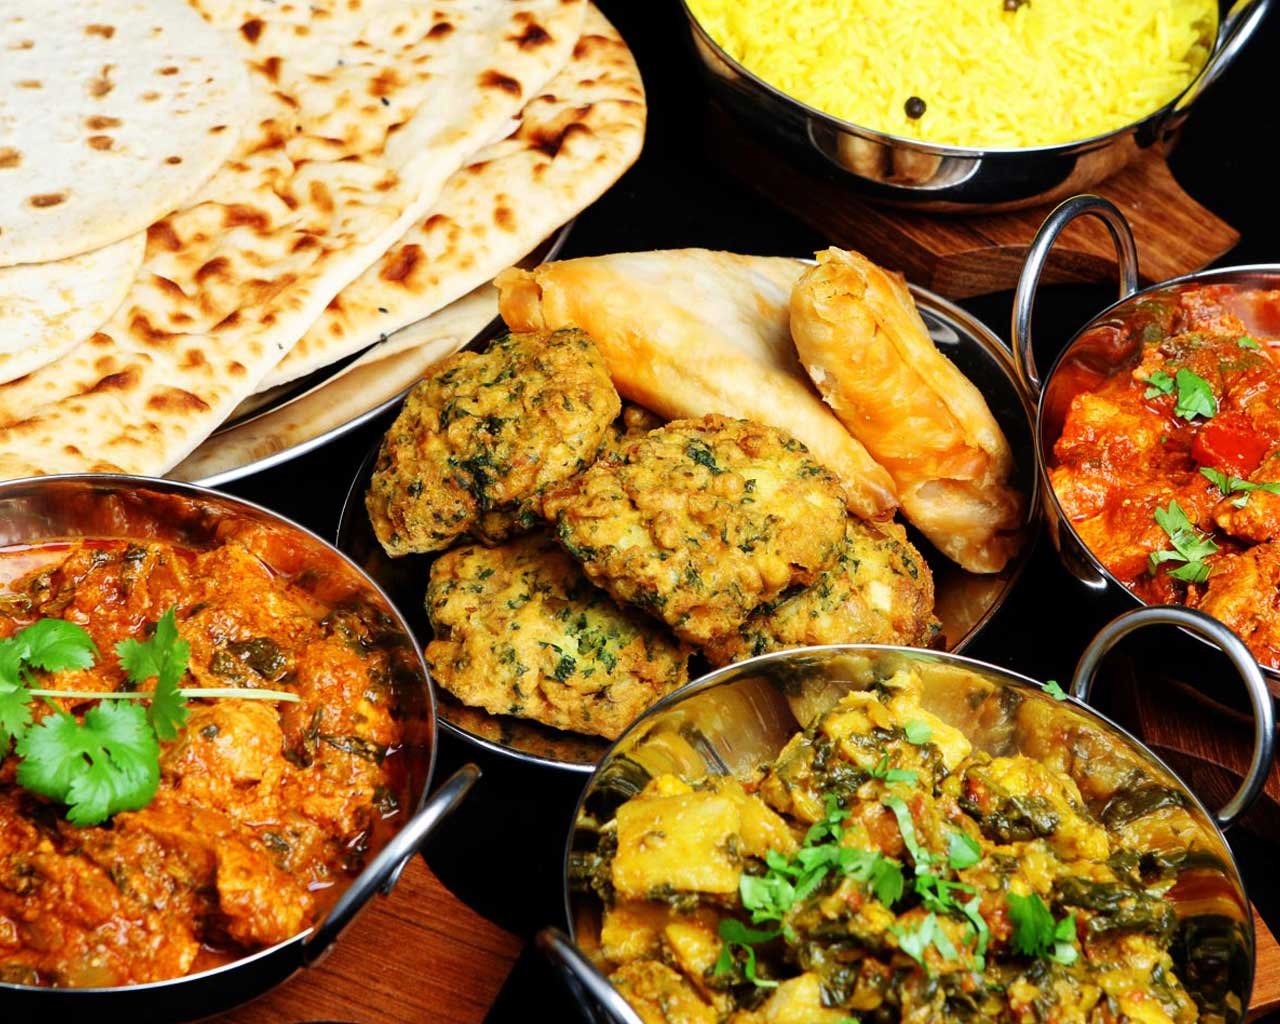 Top 10 indian restaurants in joburg joburg for About indian cuisine